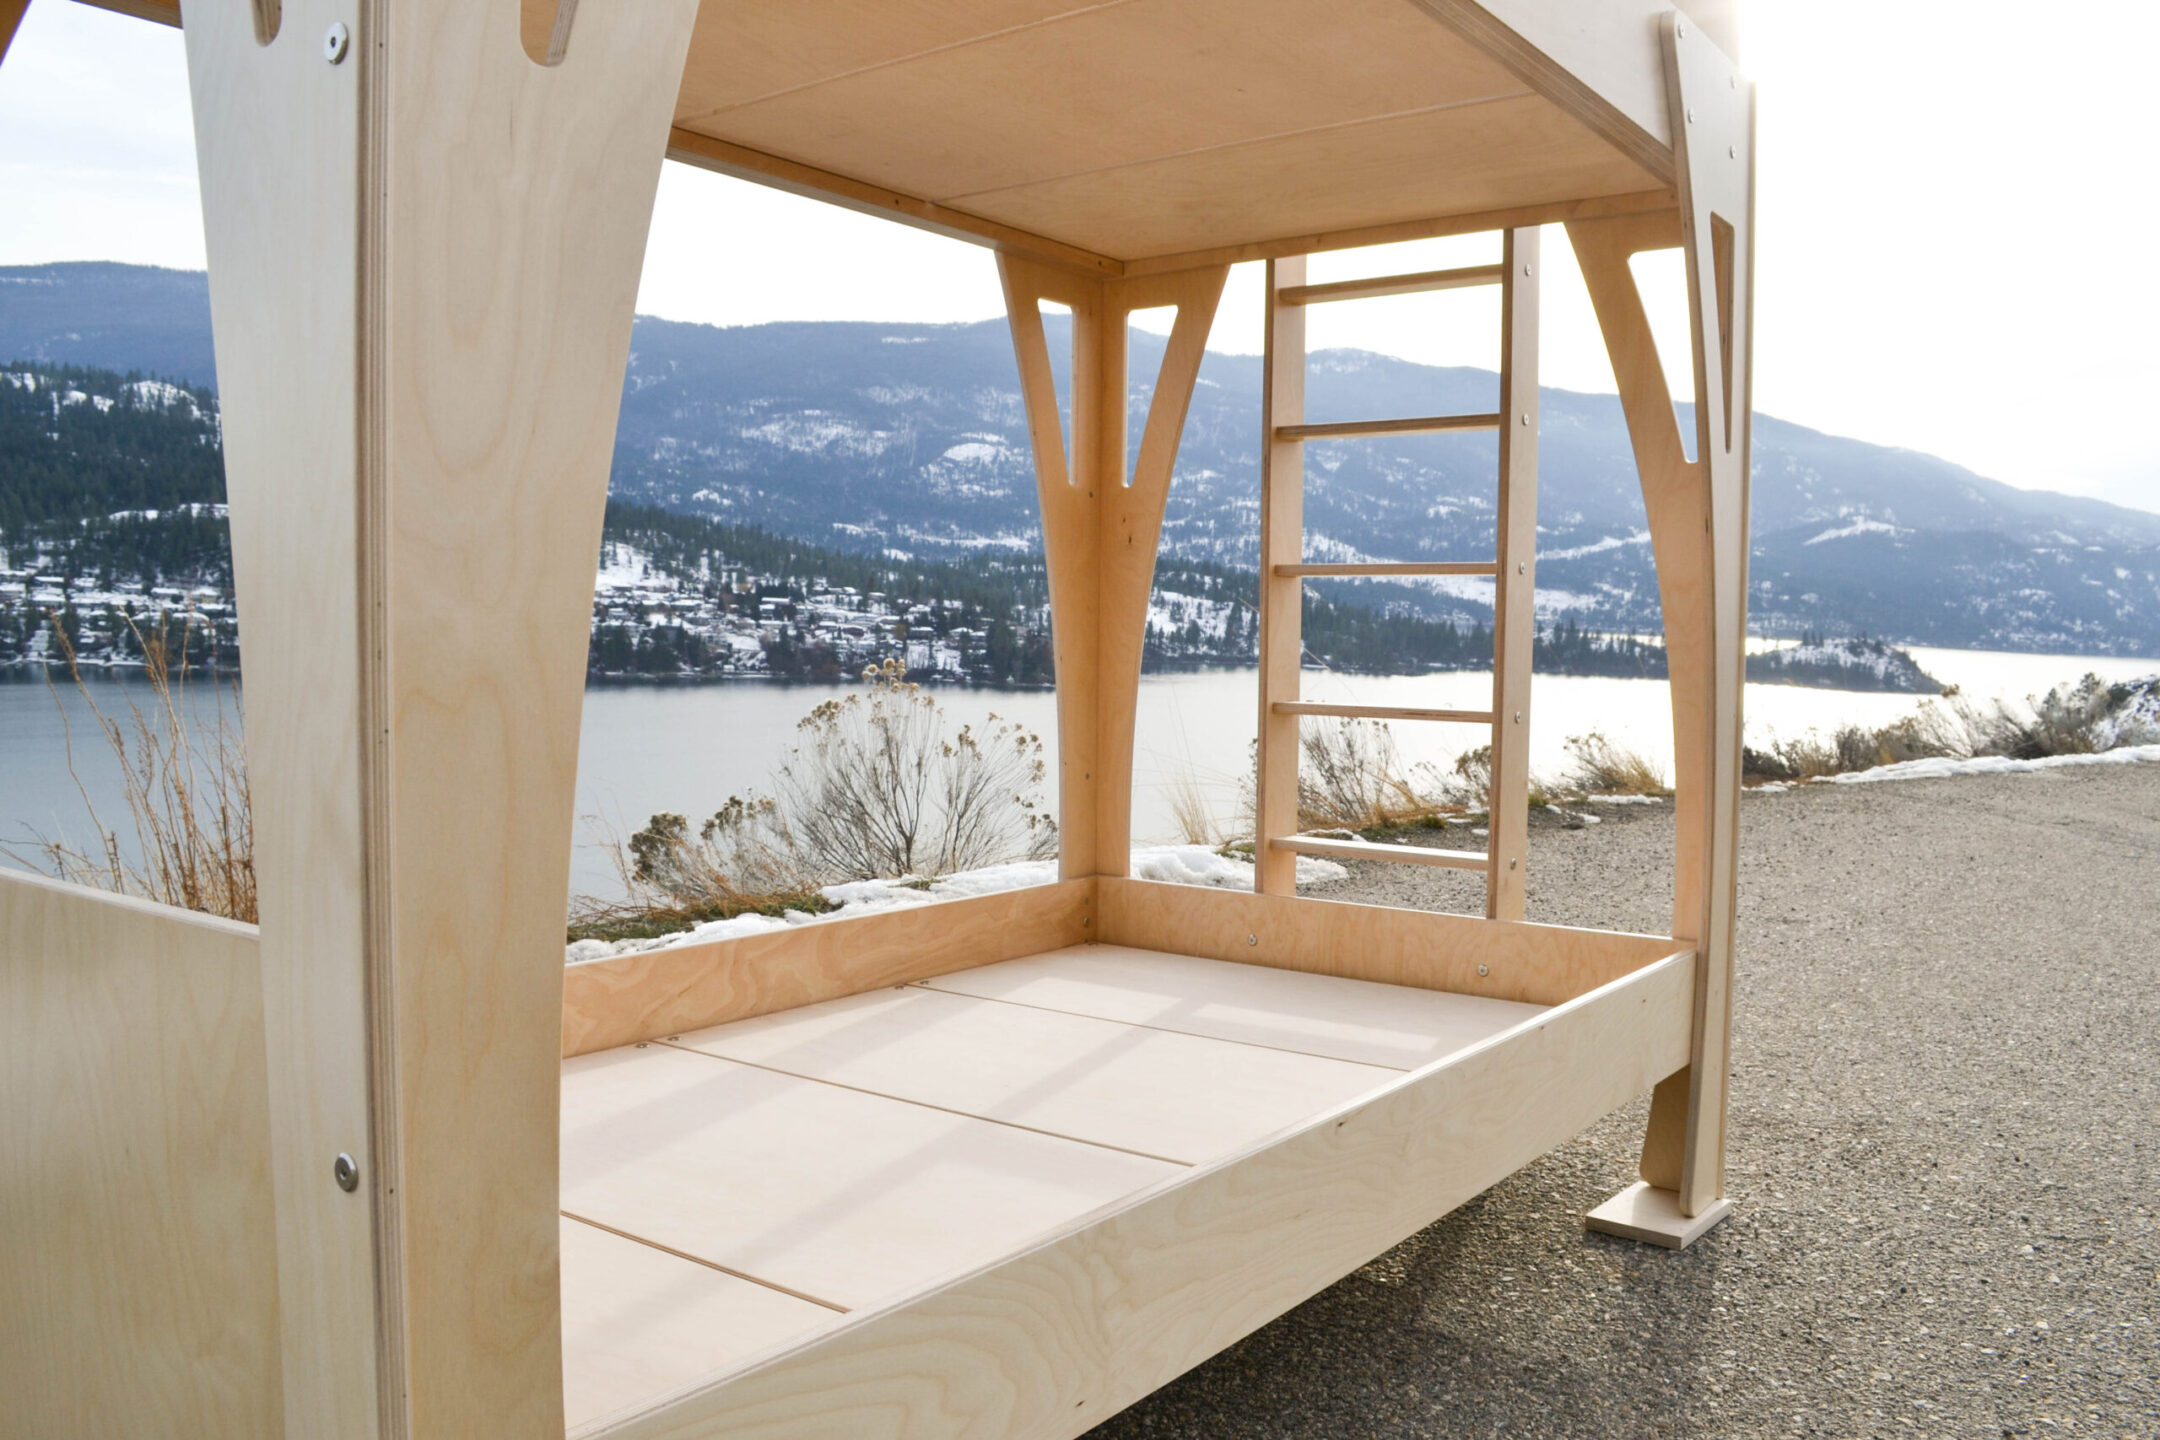 the birch multiply bed looks beautiful in the sunshine